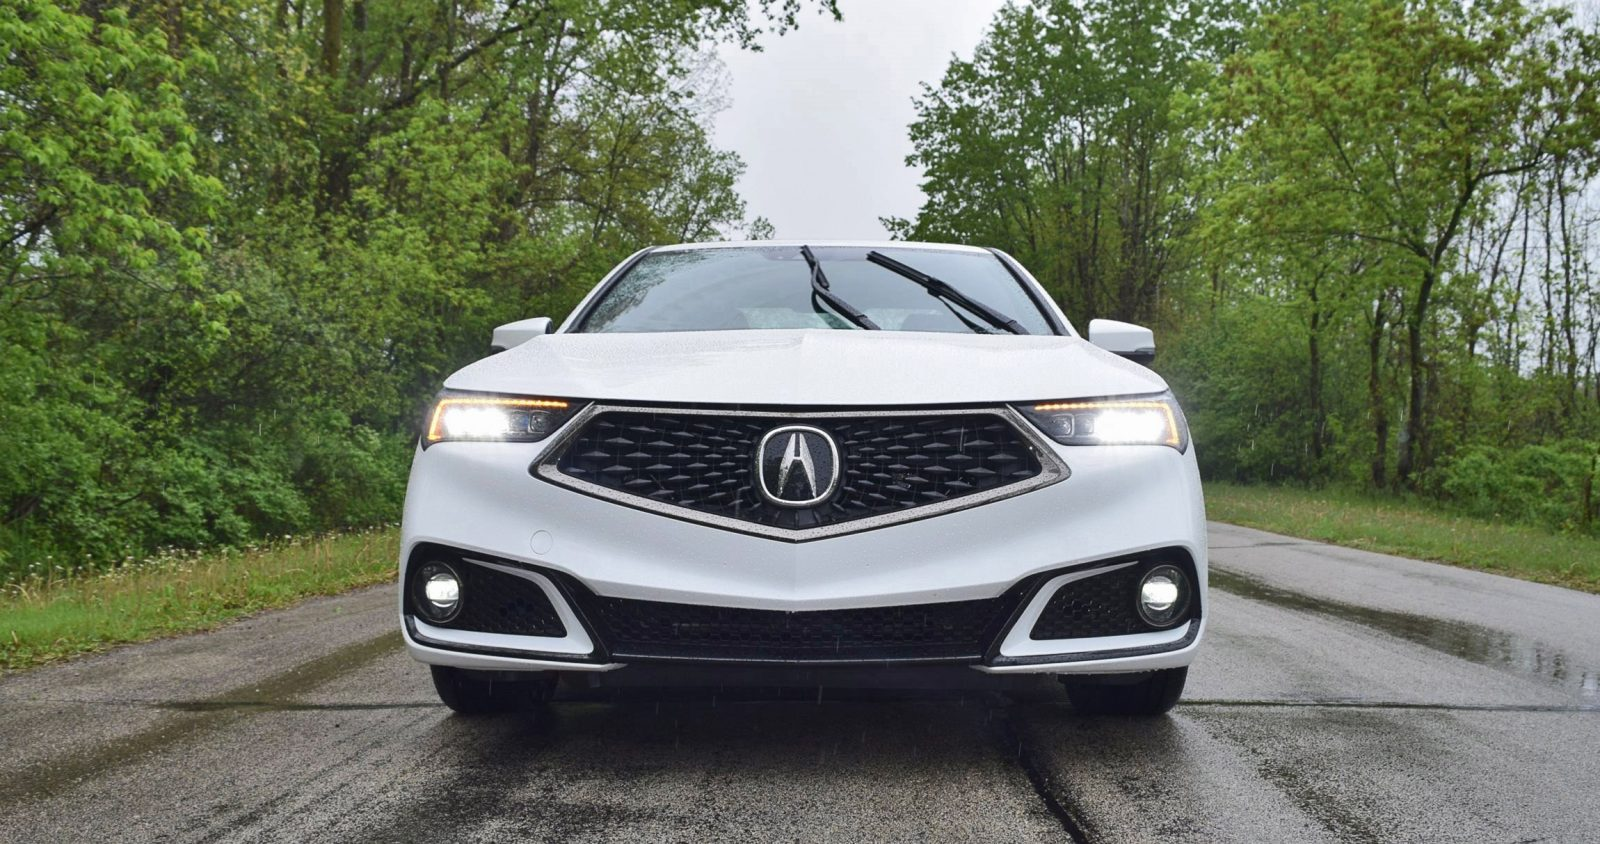 2018 Acura TLX A-Spec 35